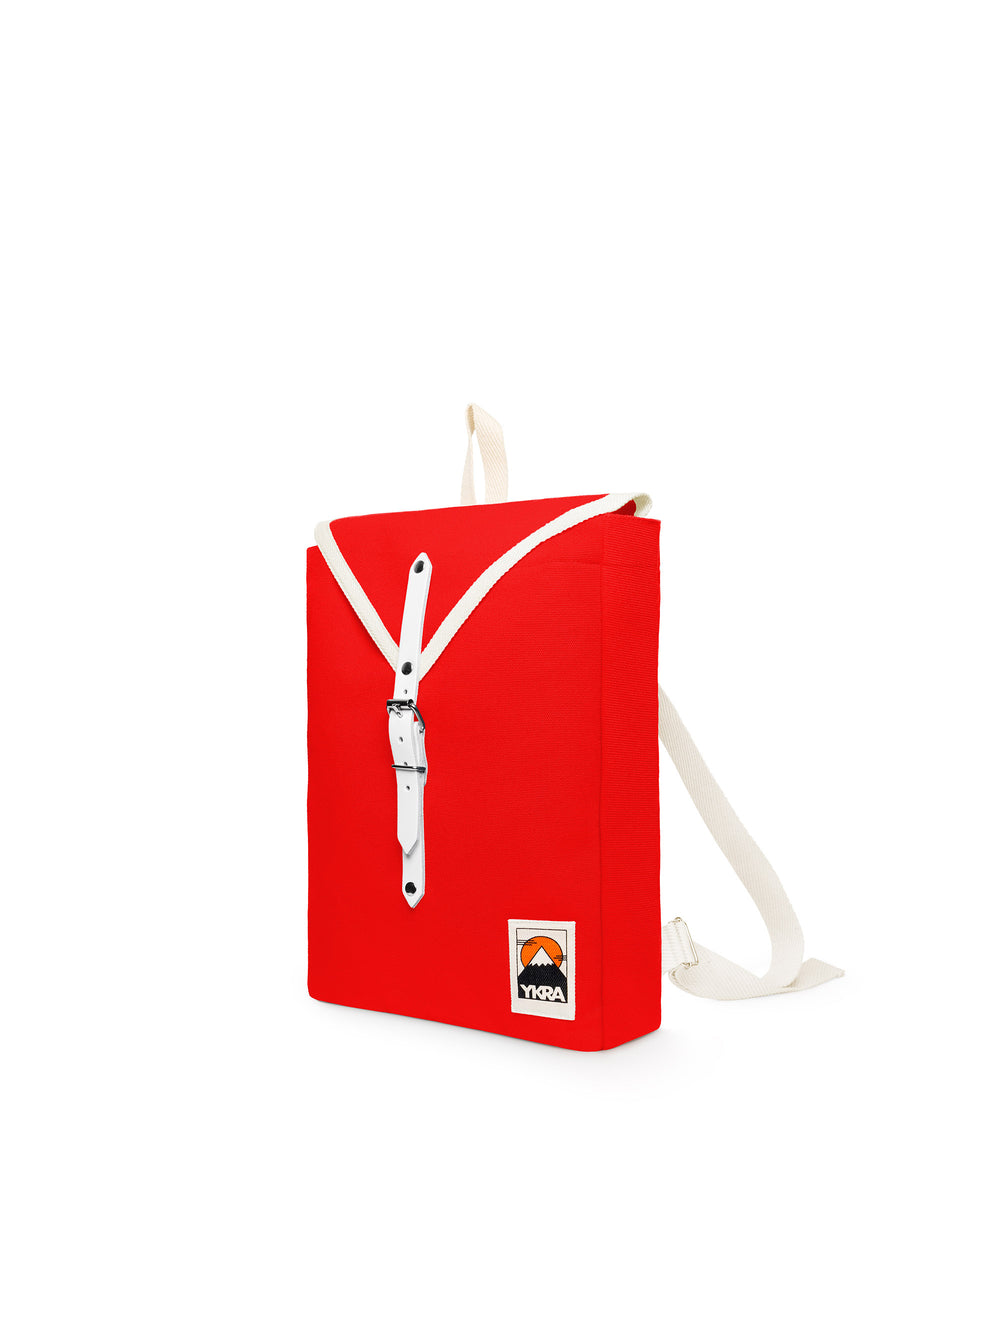 YKRA Red backpack brings color to your everyday journeys